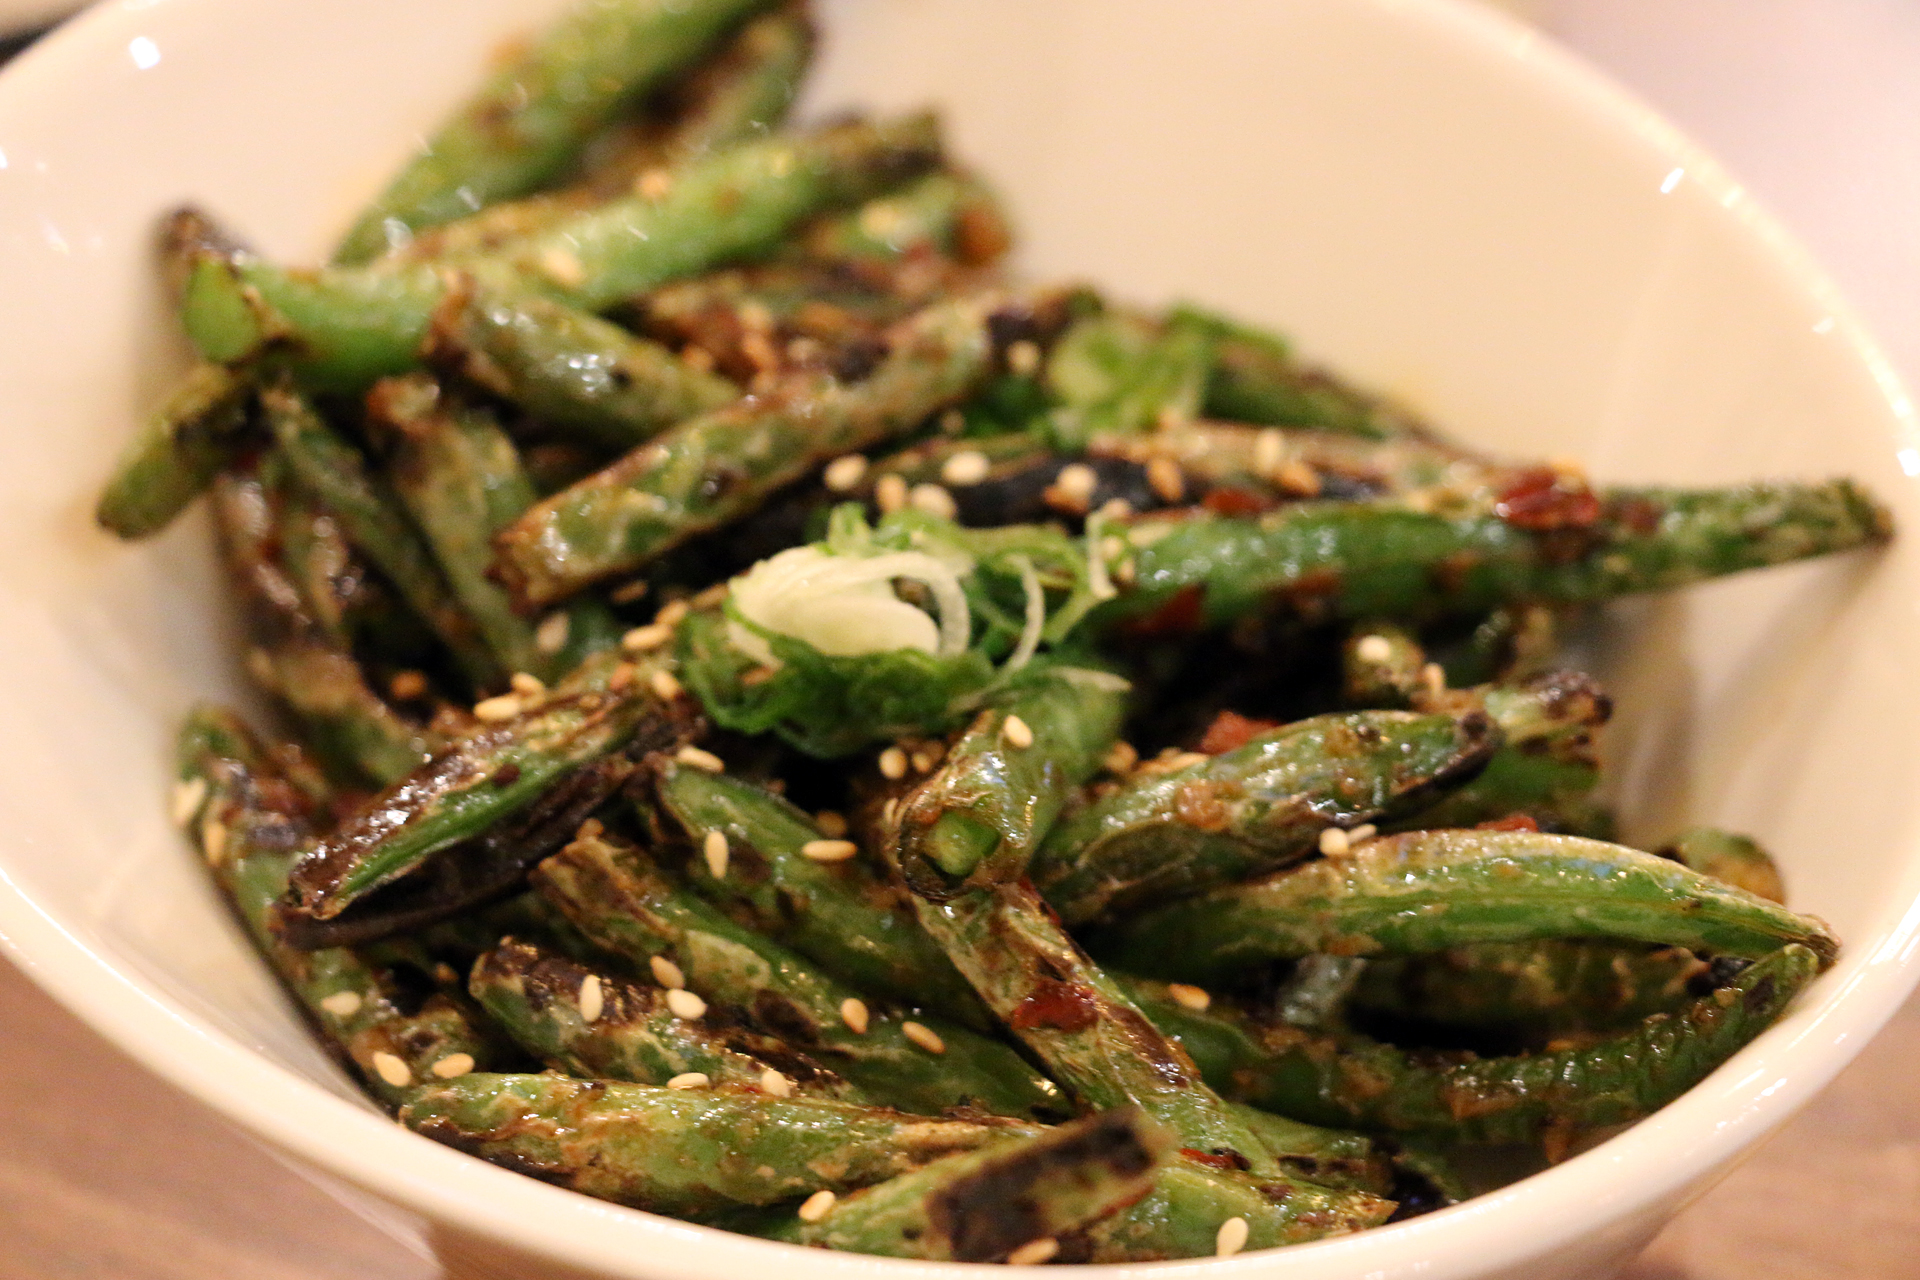 Dry-sautéed spicy string beans.